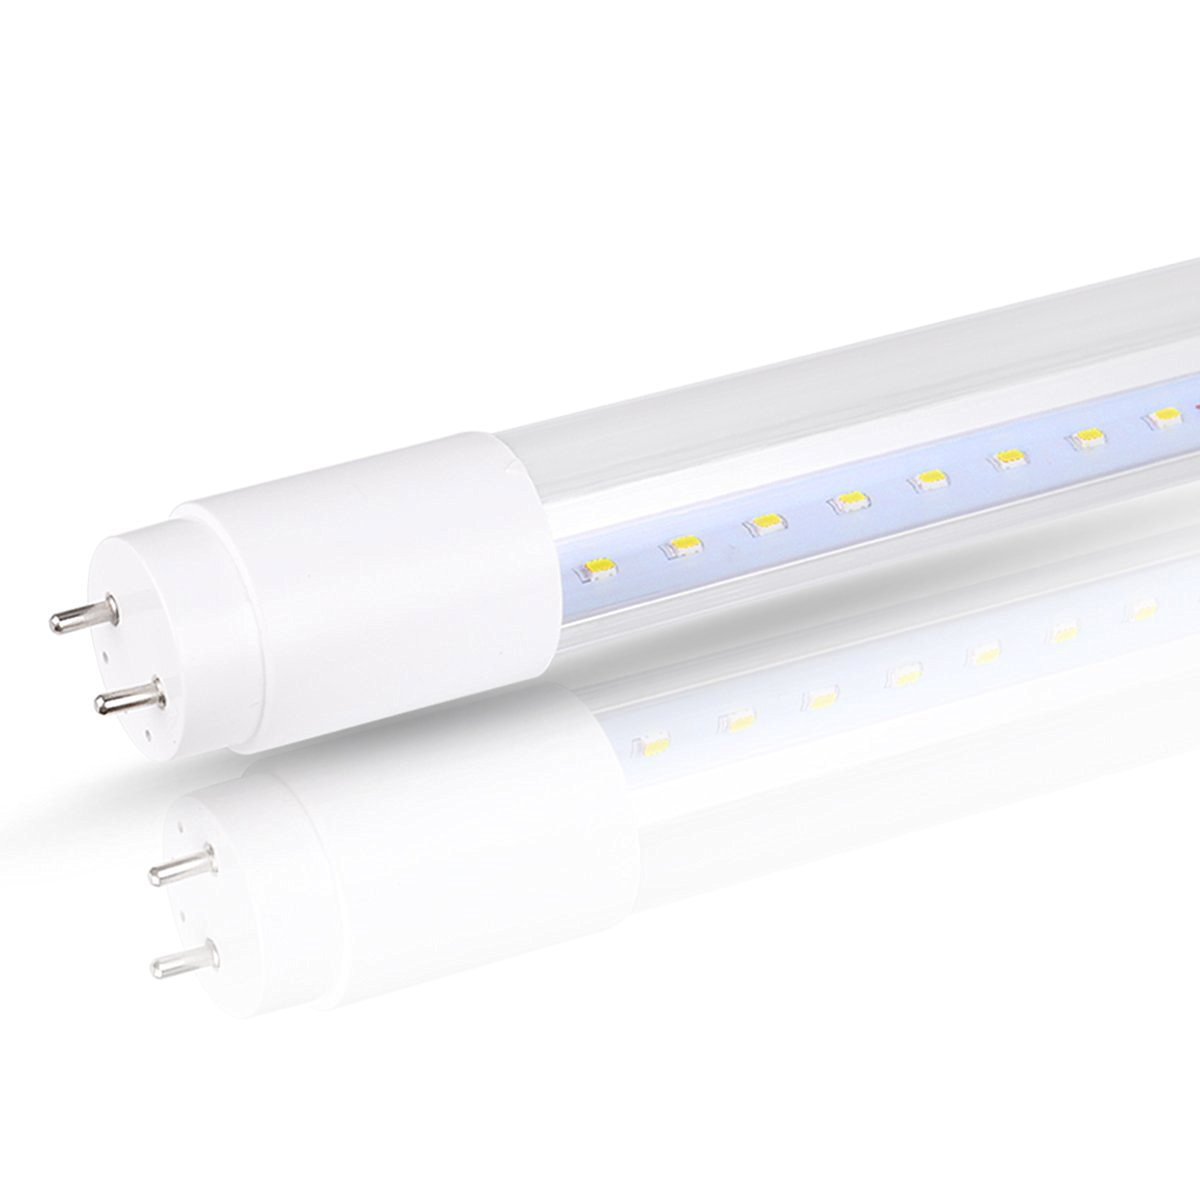 hight resolution of get quotations lohas led light bulb t8 led light tube 18w 40w equivalent 1600lm